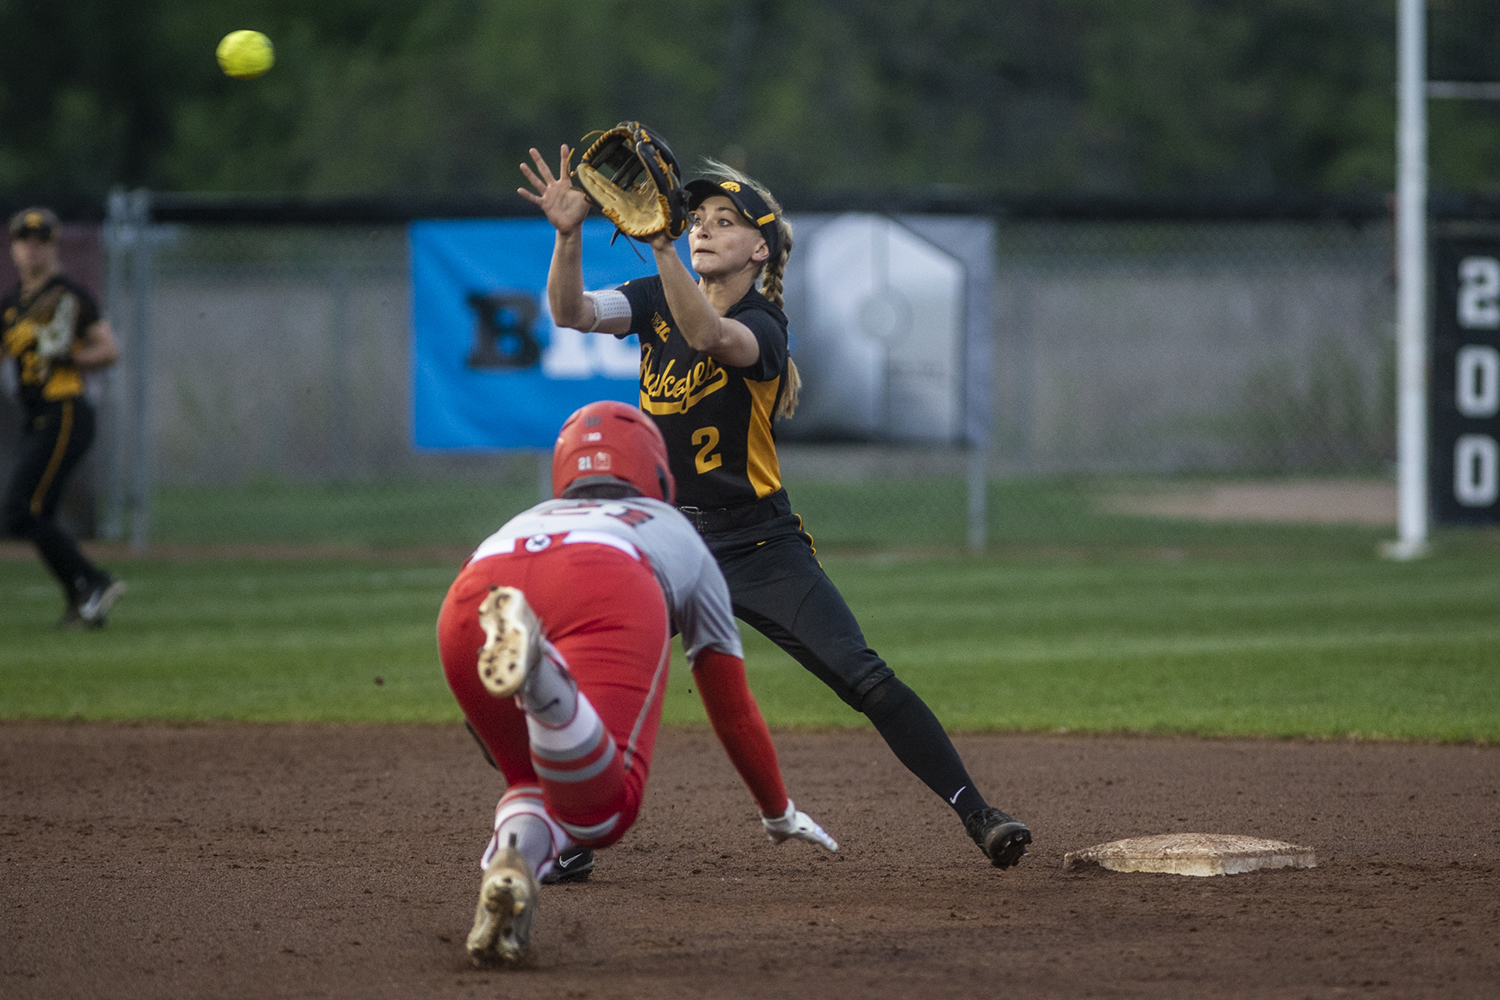 Iowa's Aralee Bogar prepares to receive a throw at second during Iowa's Big Ten tournament game against Ohio State at the Goodman Softball complex in Madison, Wisconsin on Friday, May 11. The Hawkeyes defeated the Buckeyes 5-1.